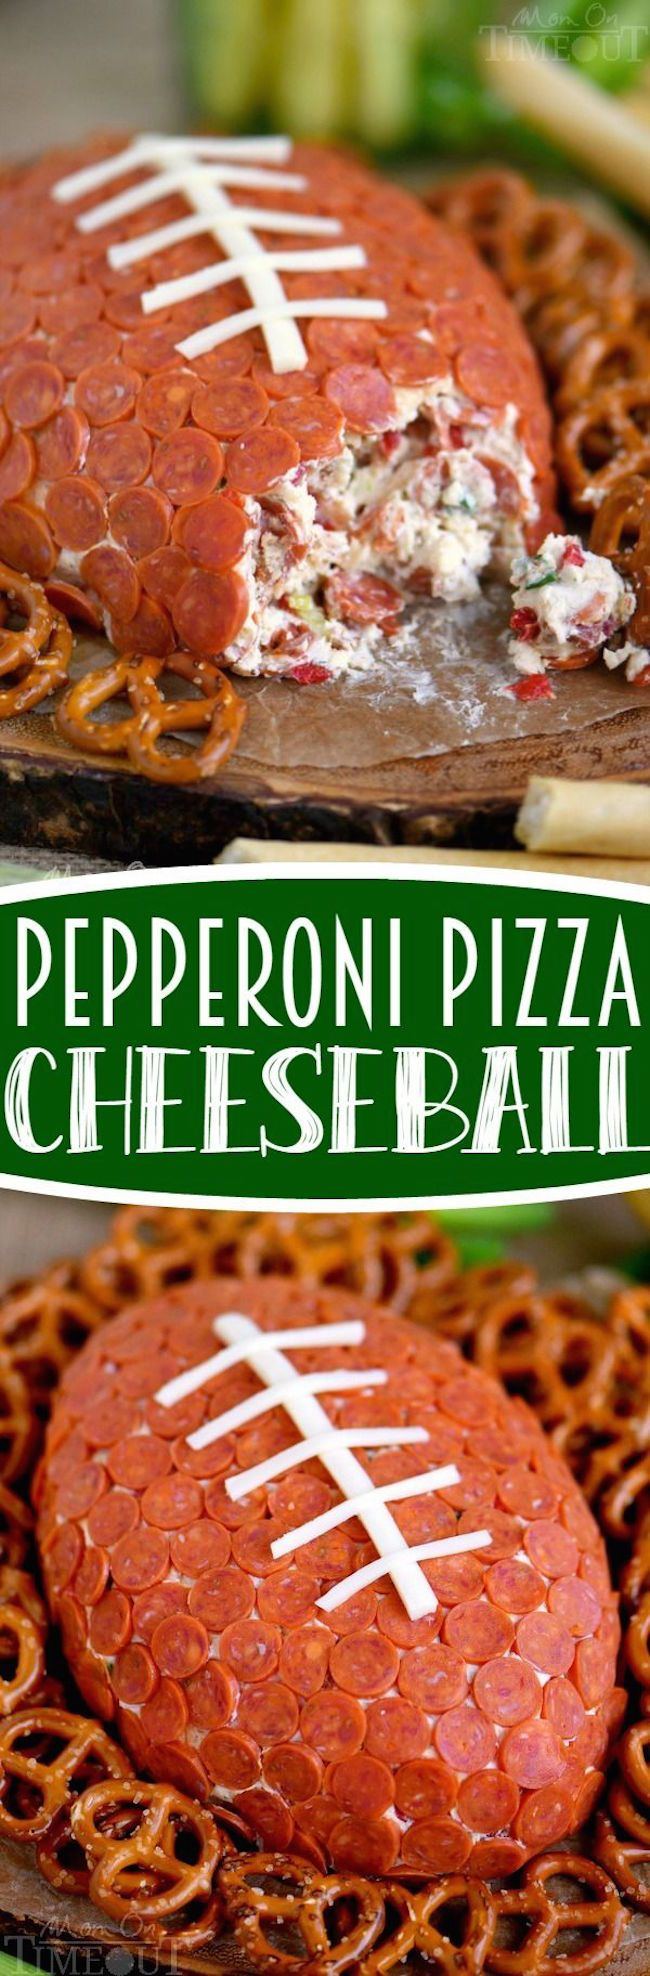 The 11 Best Super Bowl Food Ideas - Pepperoni Football Cheeseball